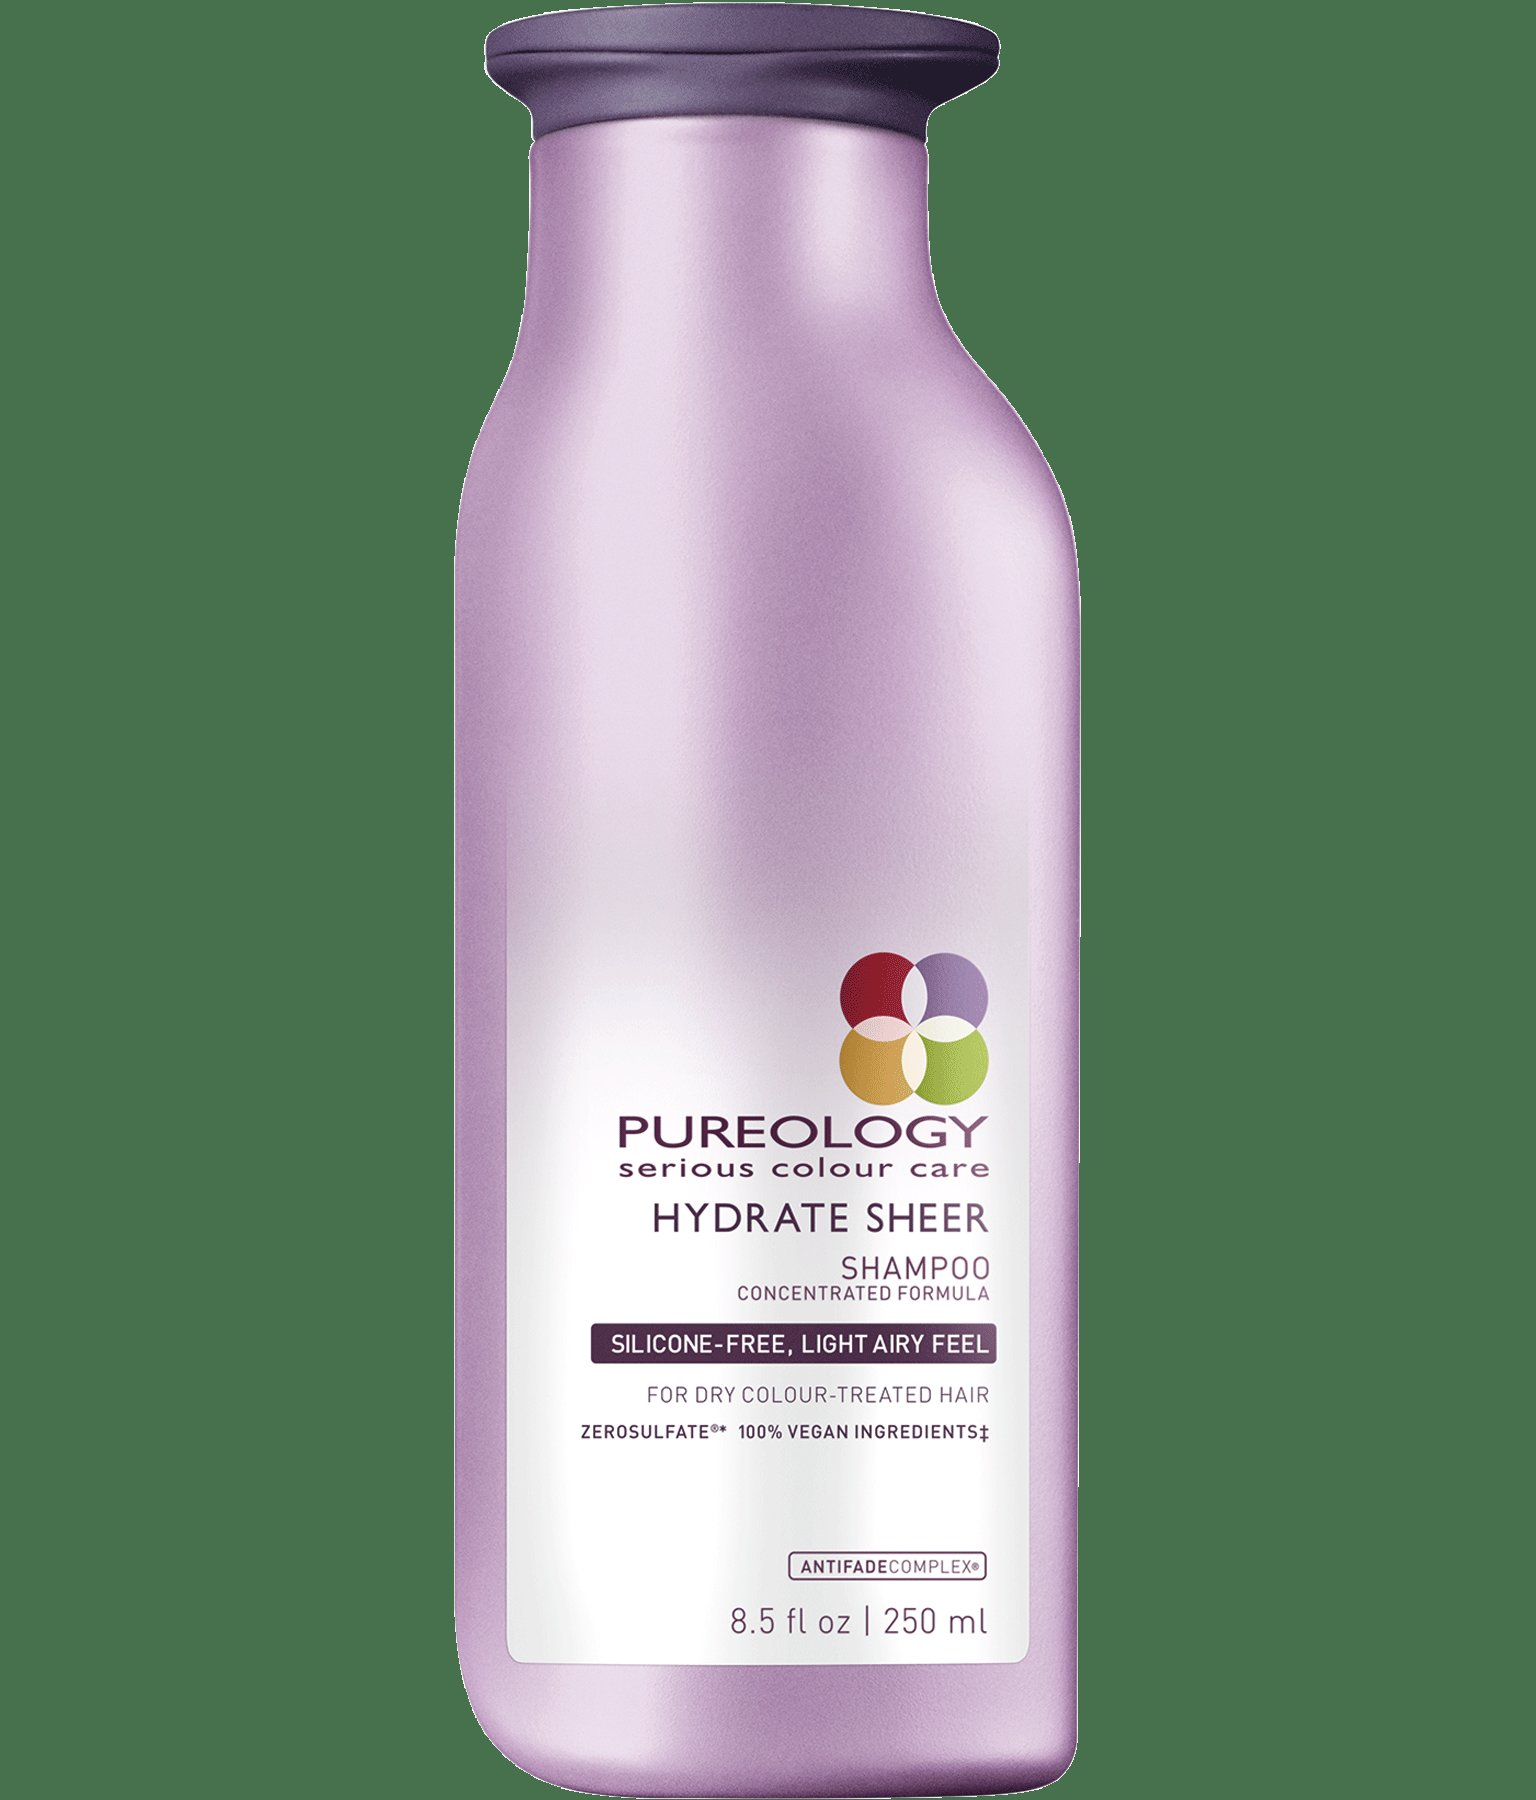 The Best Hydrate Sheer Shampoo For Fine Dry Color Treated Hair Pictures